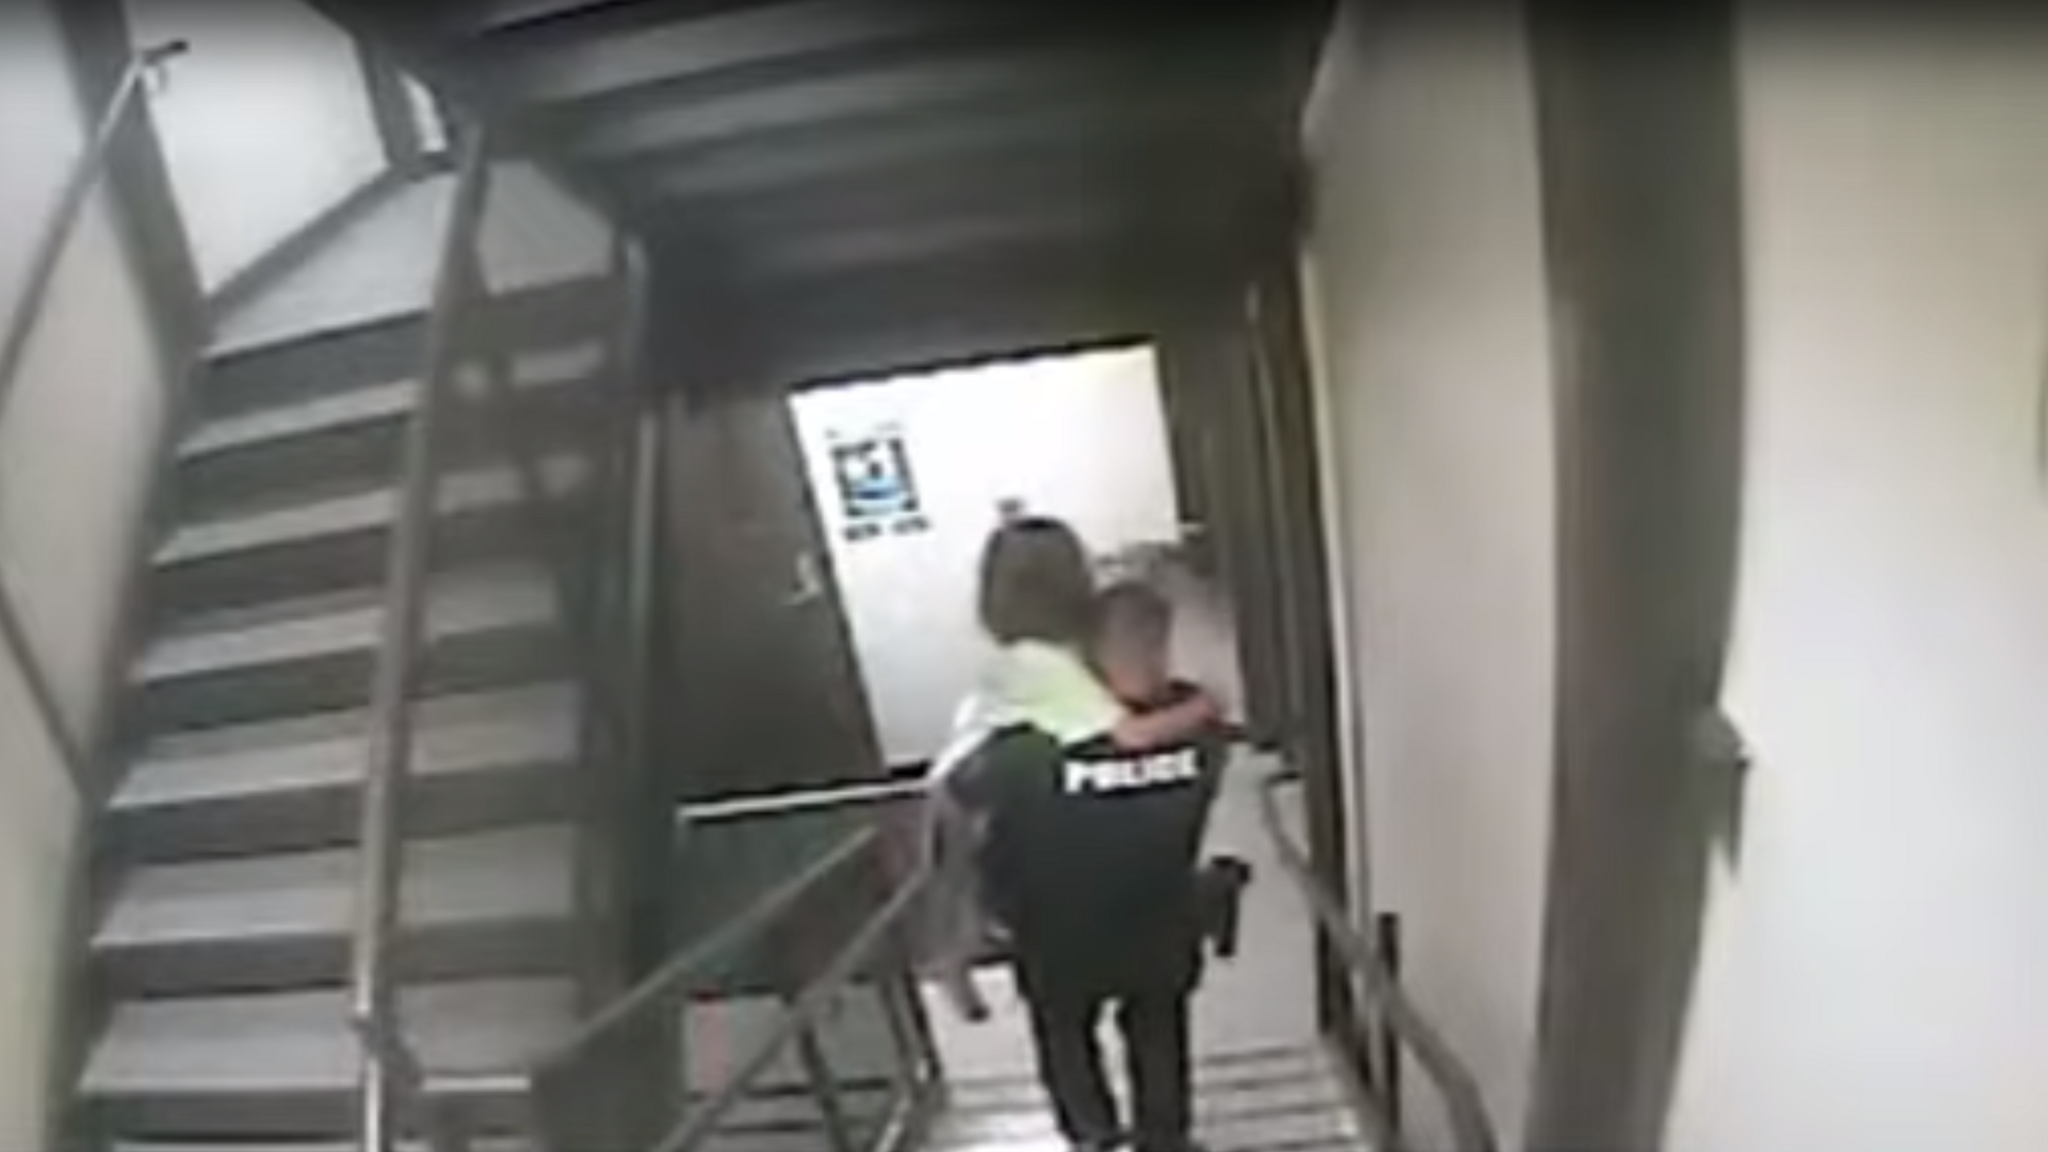 Kidnapped girl, 8, rescued by police in dramatic bodycam footage